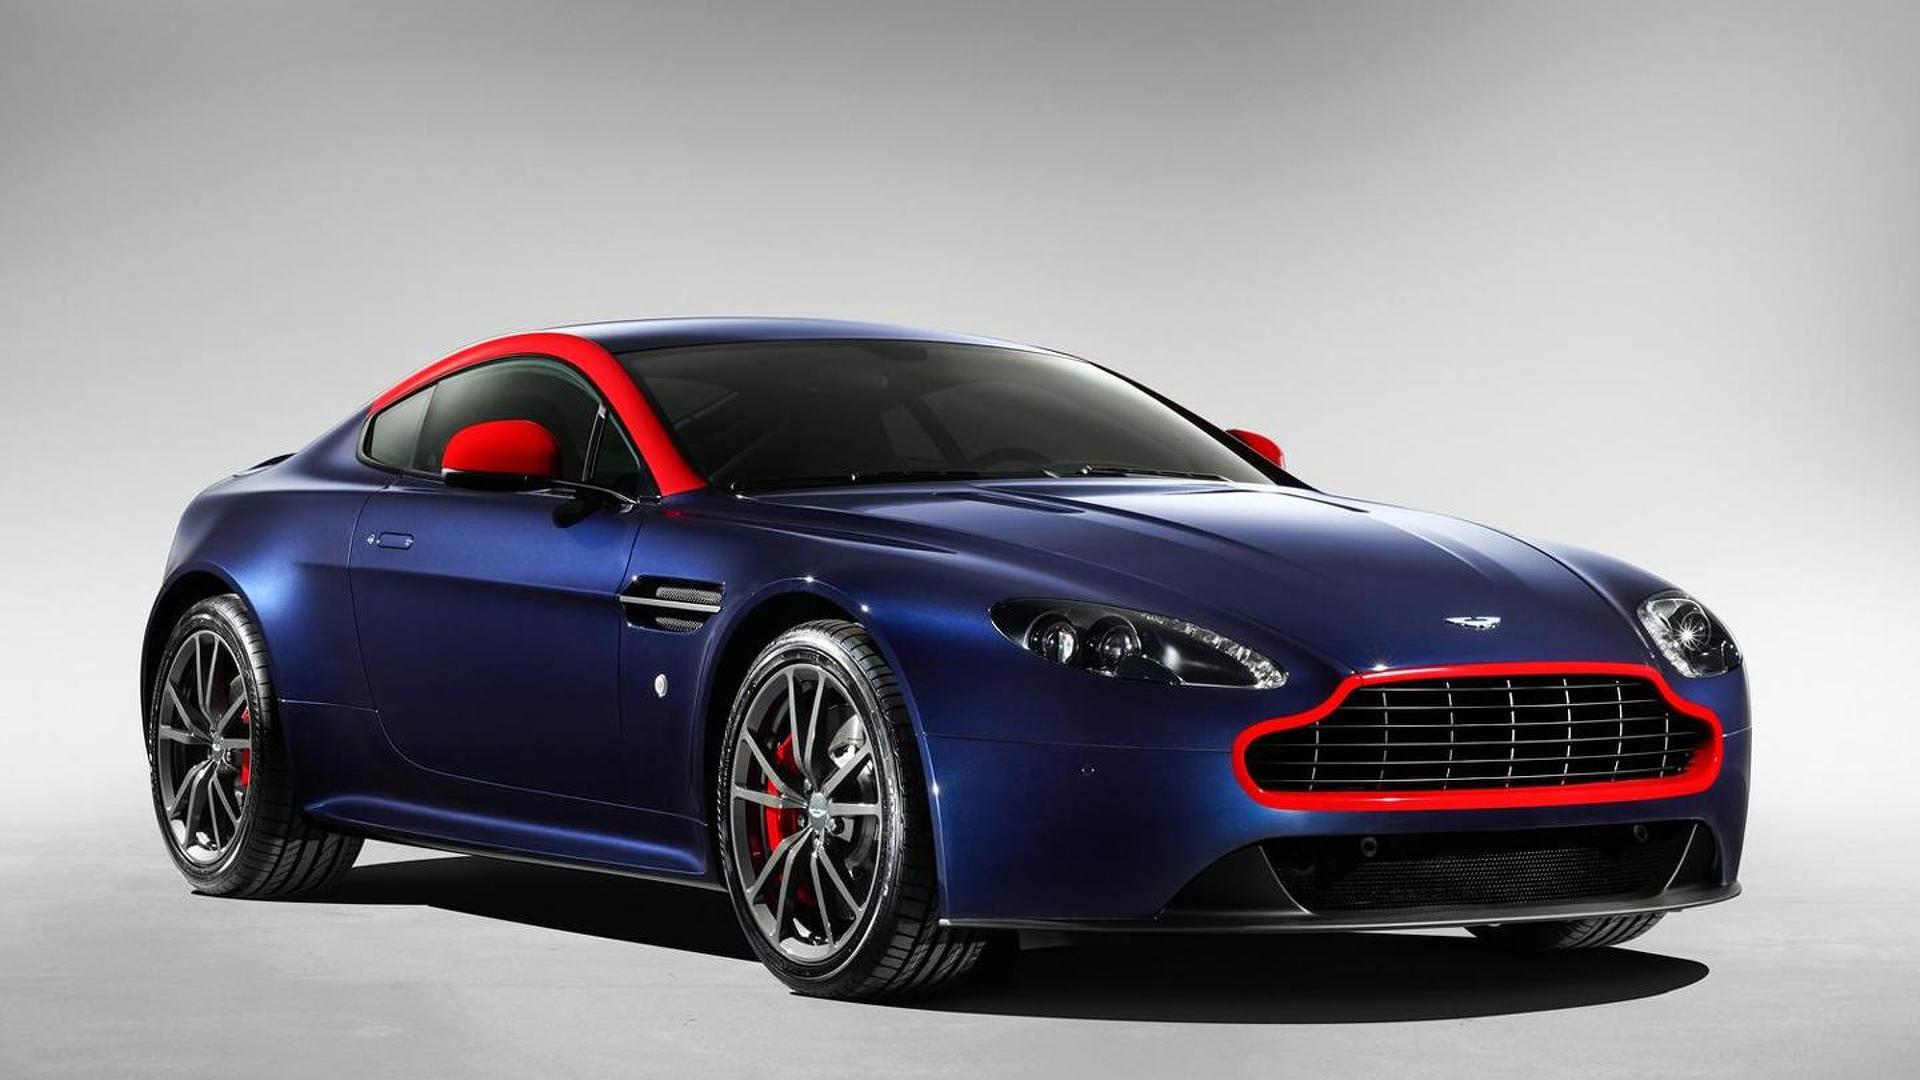 Aston Martin Announces V8 Vantage N430 And Db9 Carbon Black White Special Editions